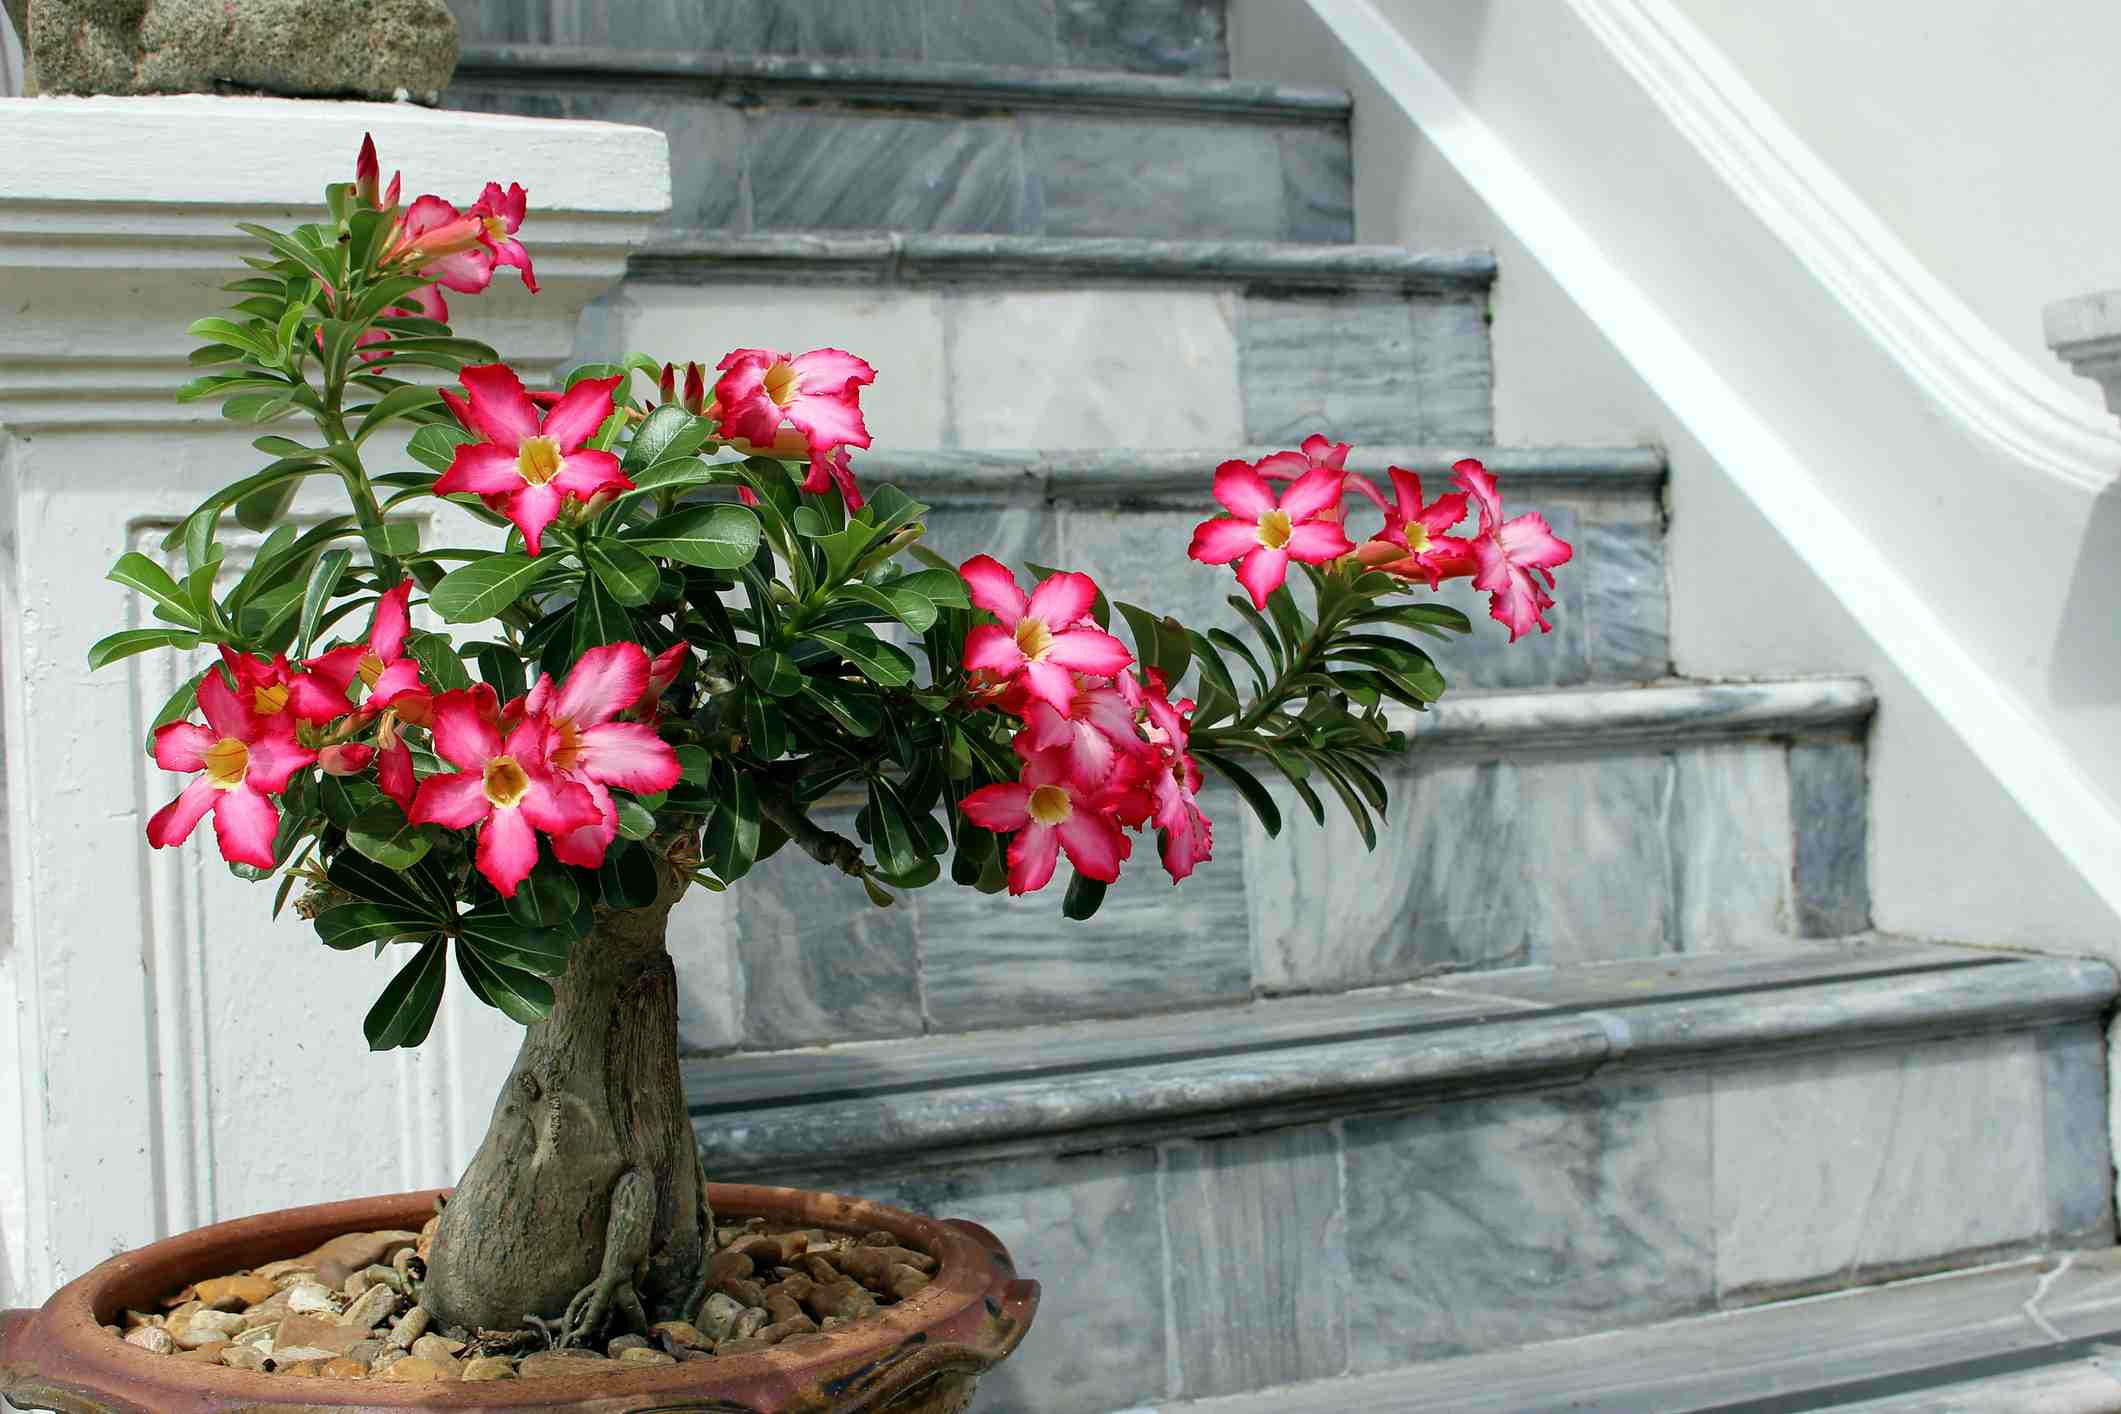 Desert Rose in a pot near a staircase